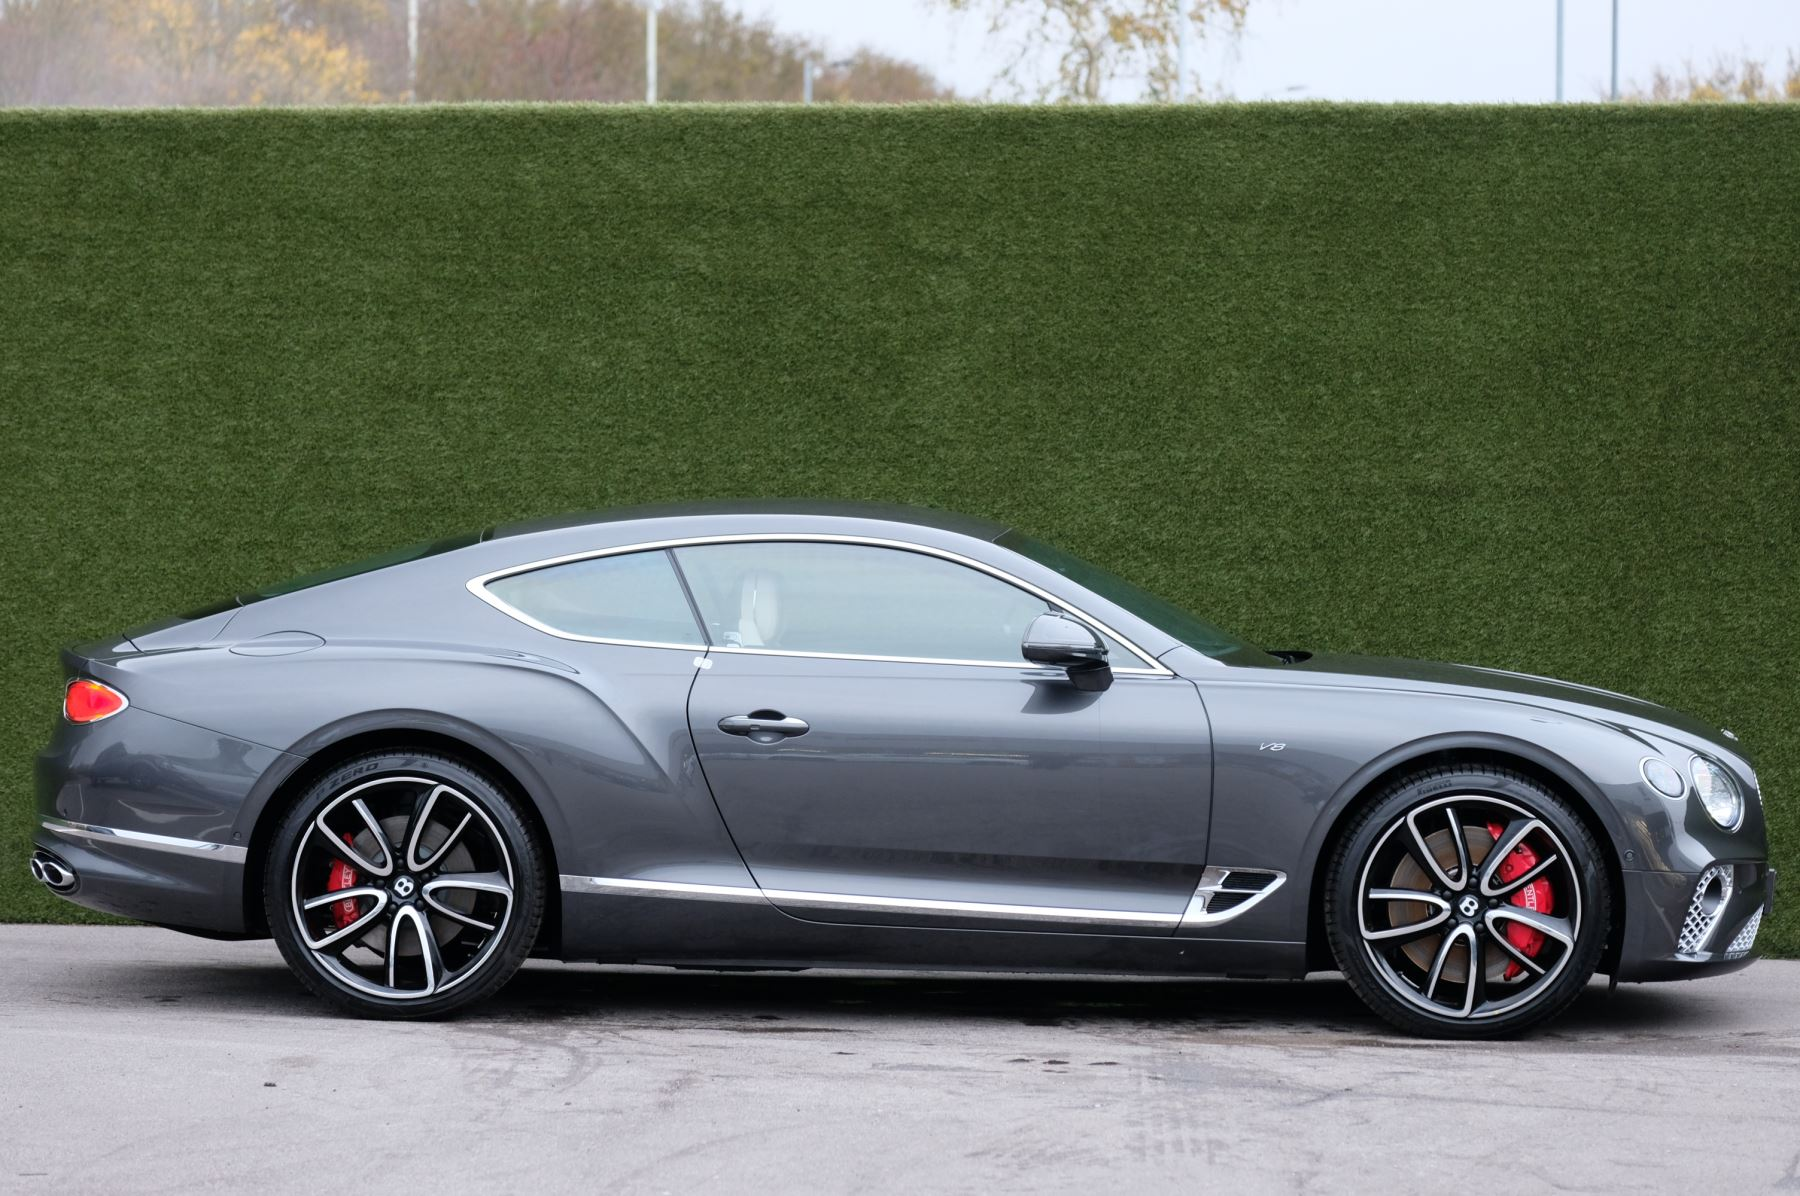 Bentley Continental GT 4.0 V8 Mulliner Driving Spec 2dr Auto [City+Tour] image 3